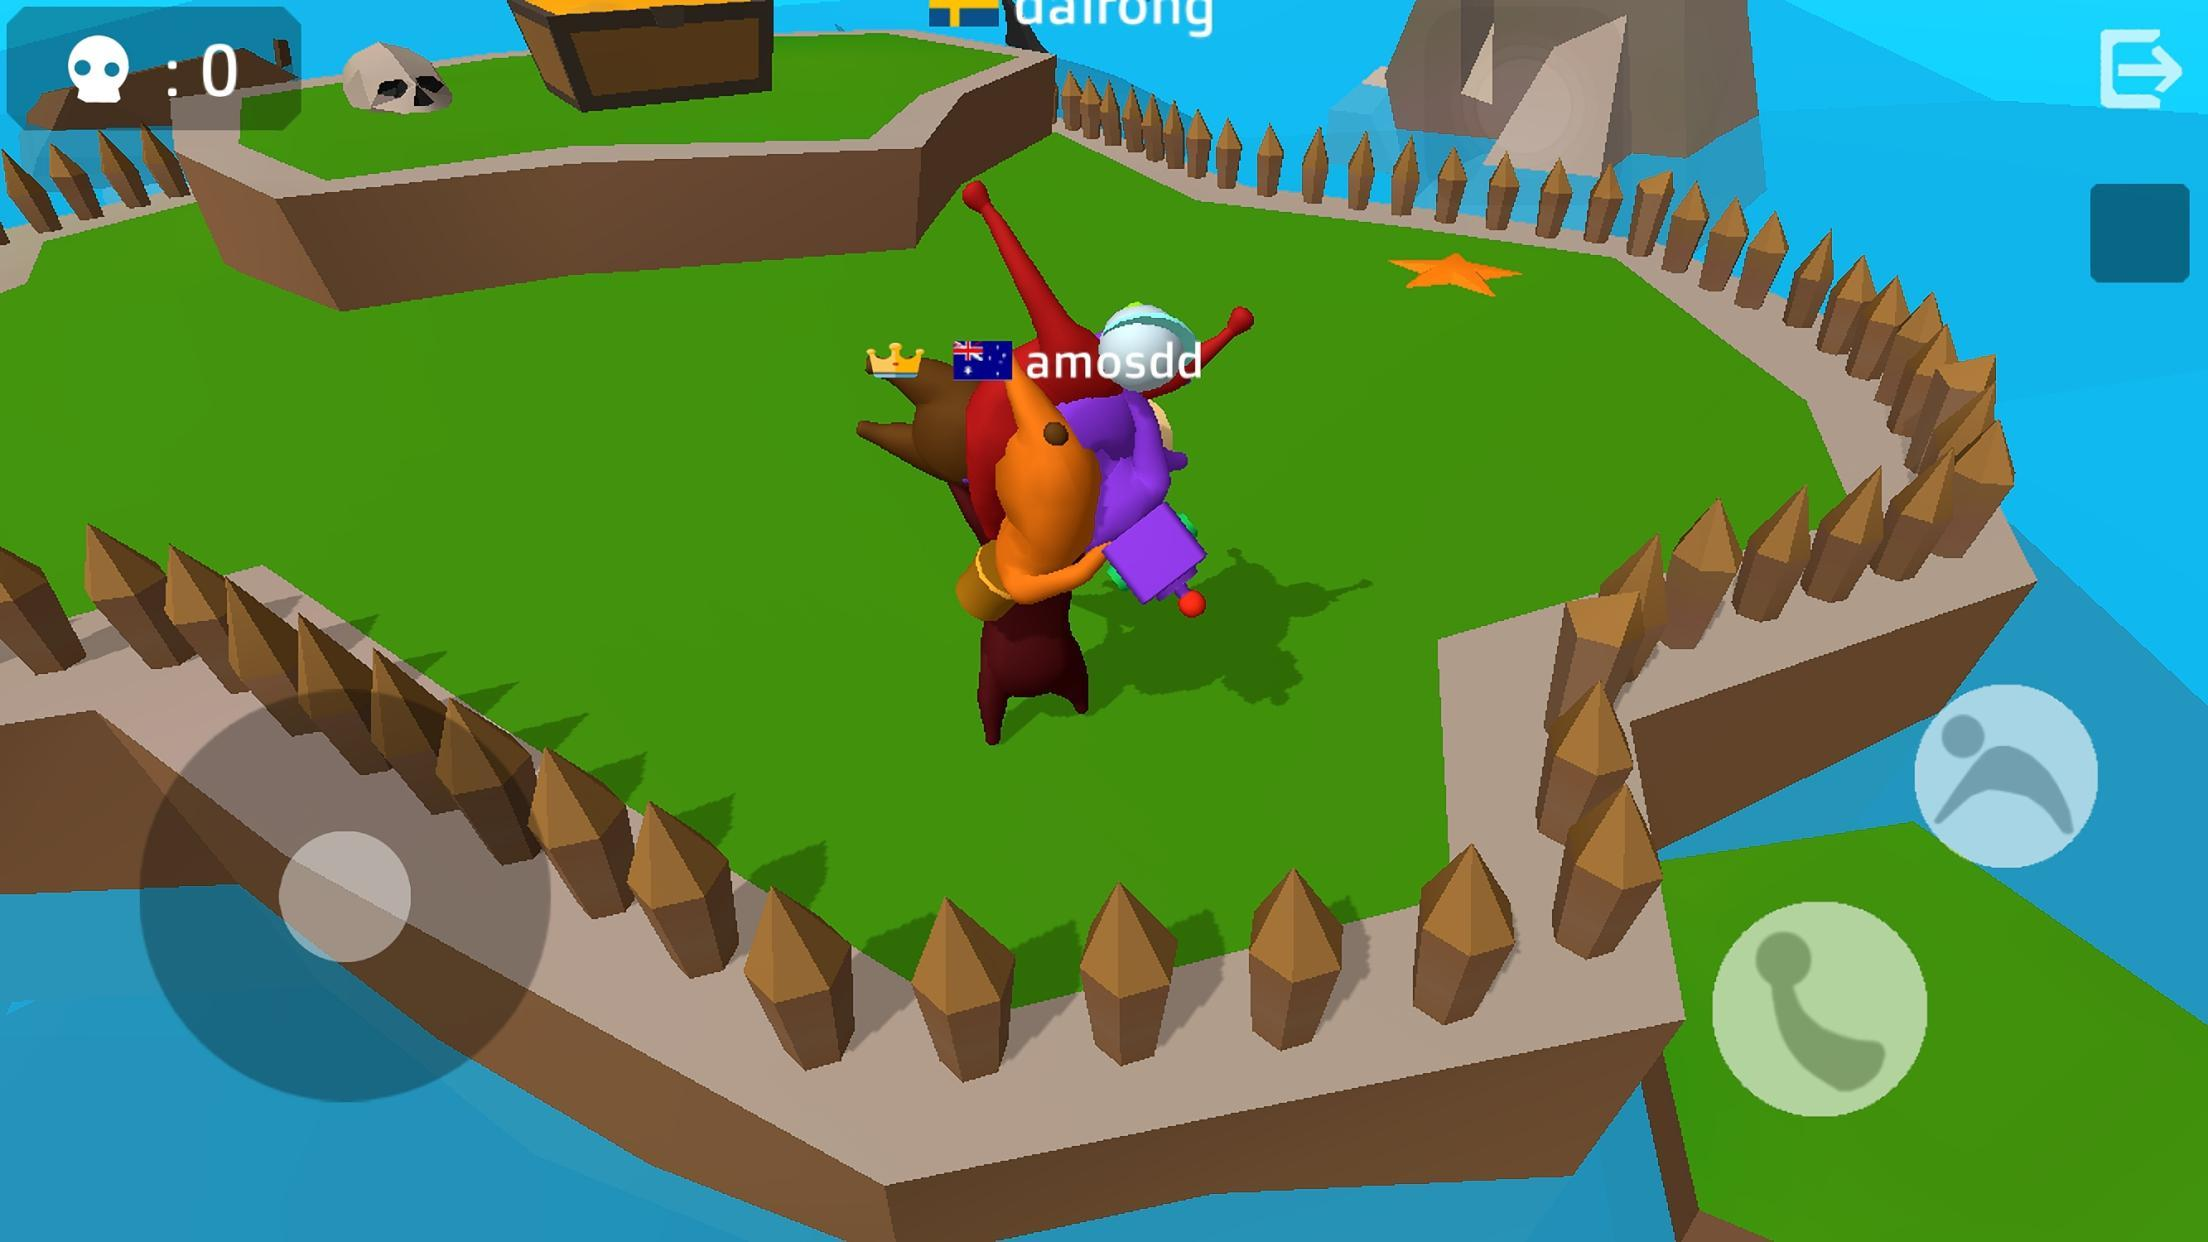 Noodleman.io - Fight Party Games 3.3 Screenshot 5